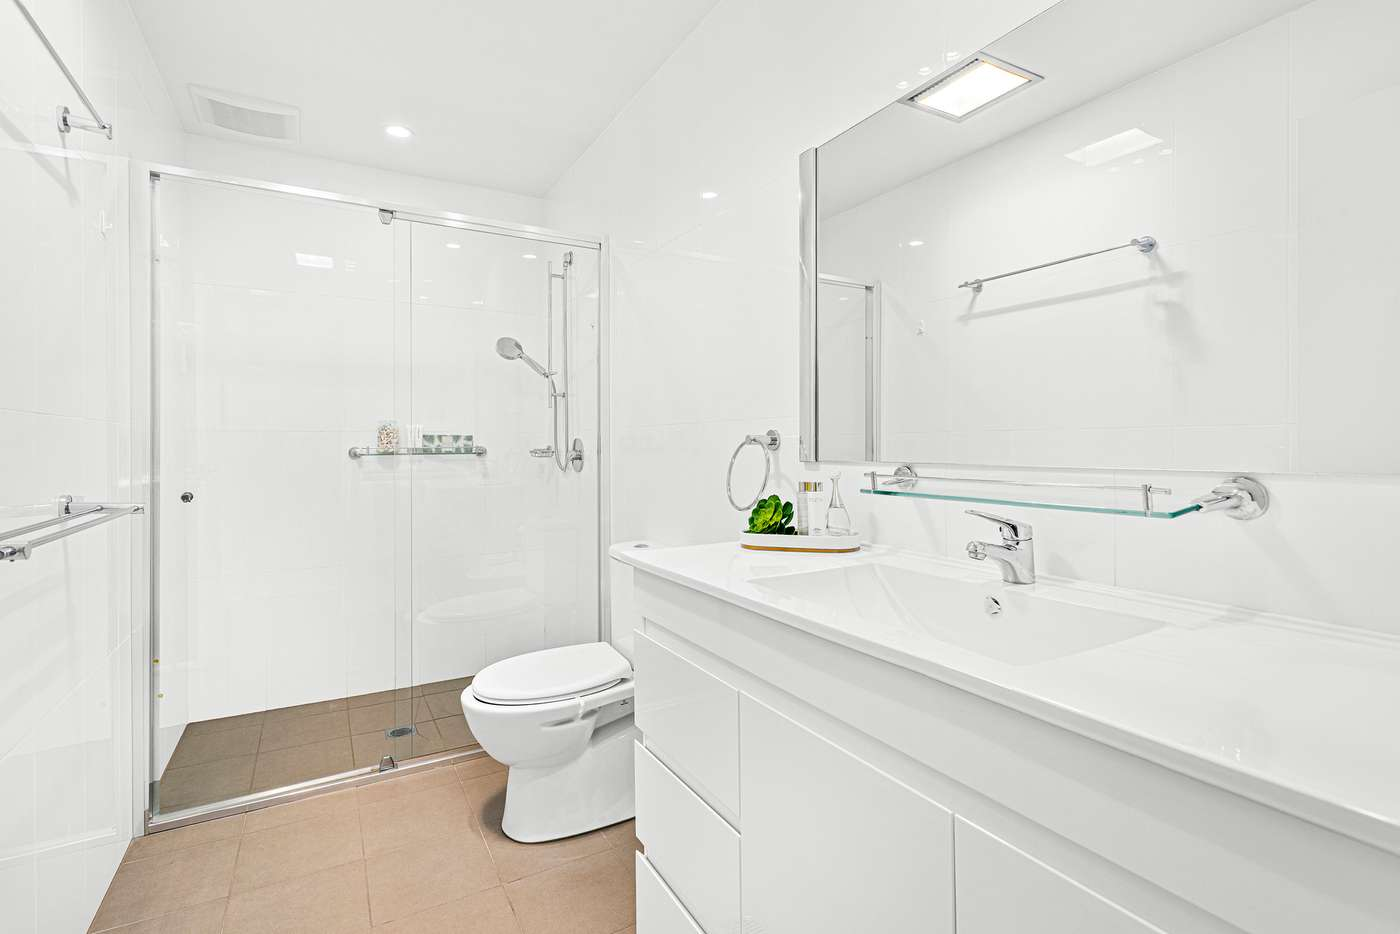 Fifth view of Homely apartment listing, 52/22 Gladstone Avenue, Wollongong NSW 2500